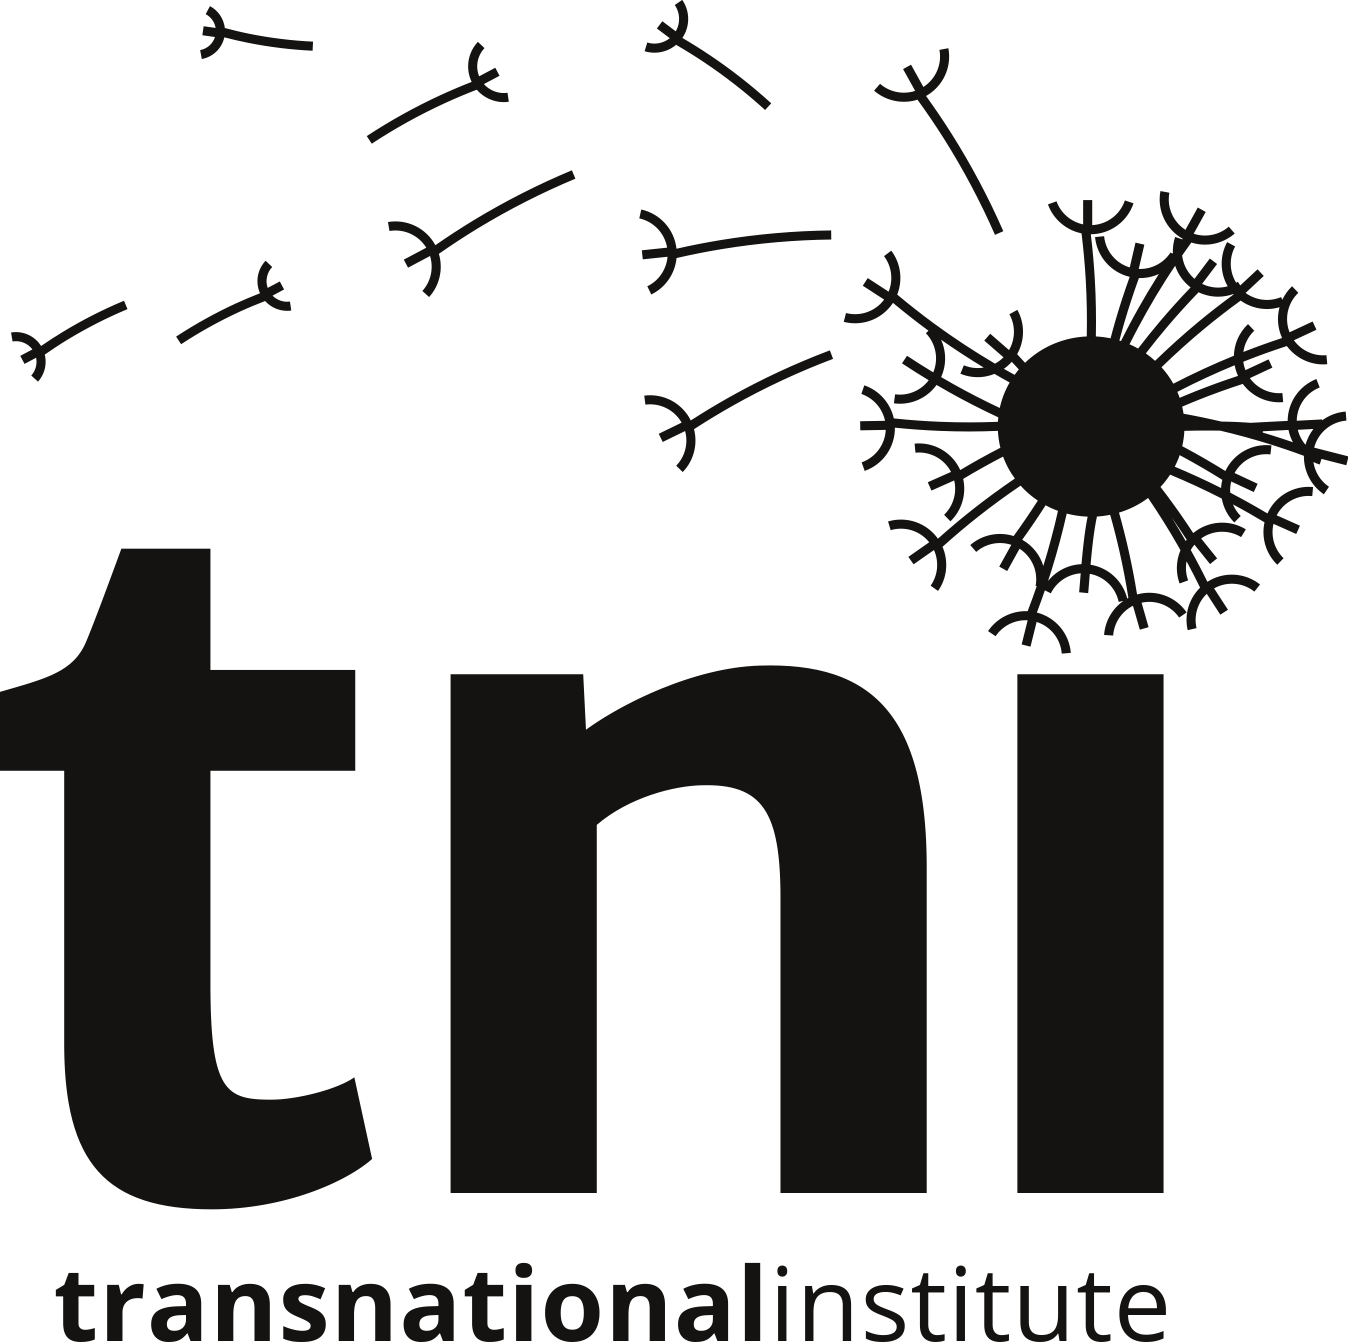 The Transnational Institute